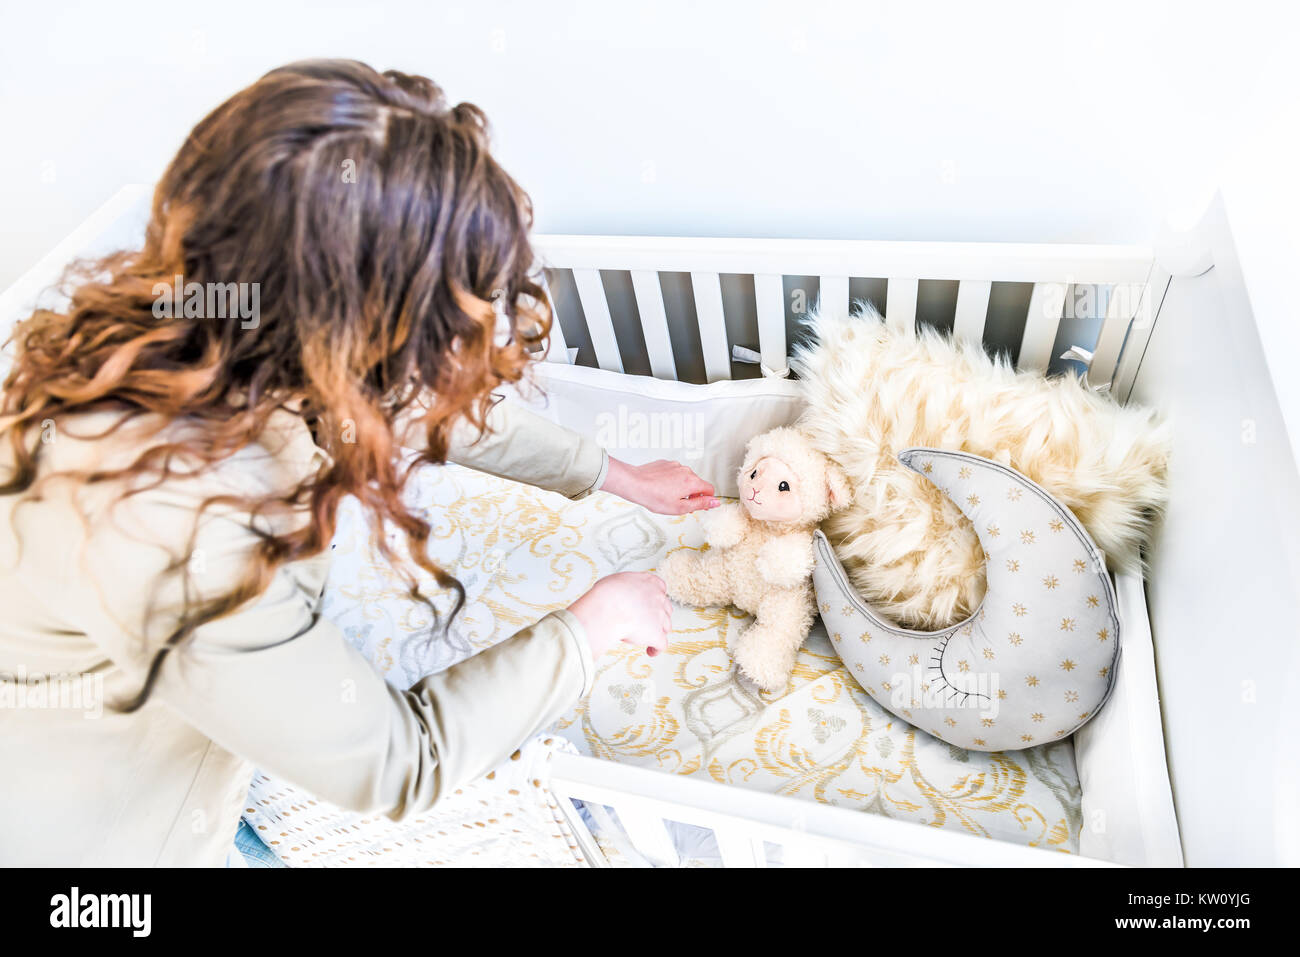 Closeup of bright yellow baby crib in nursery room with young woman in model staging home, apartment or house setting - Stock Image